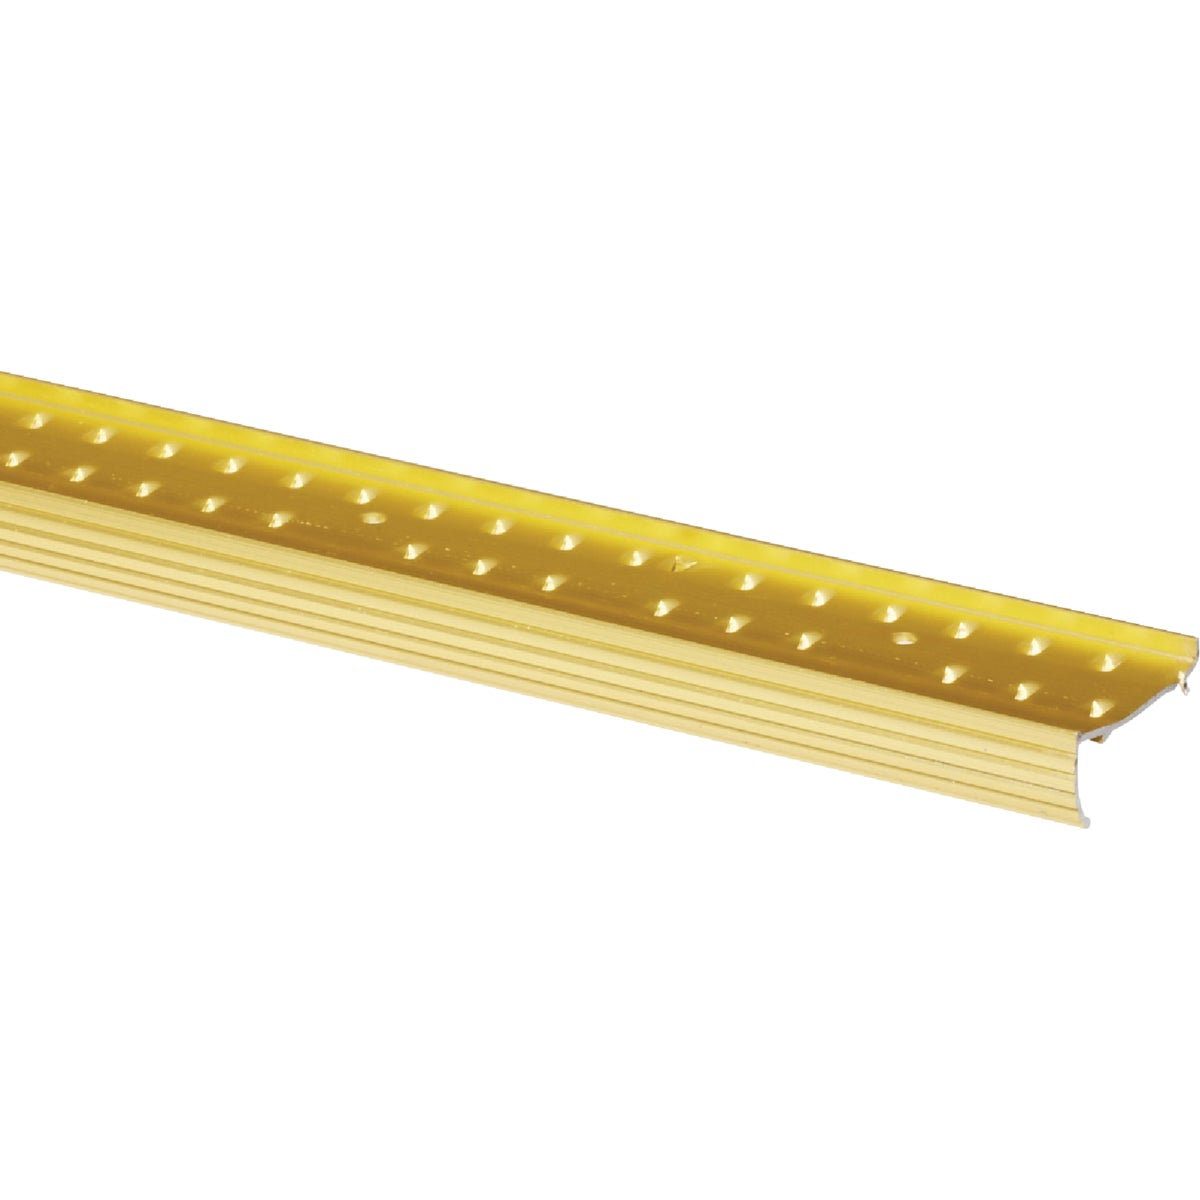 "1-3/8""X6' GOLD CLAMPDOWN - H70FB/6DI by Thermwell Prods Co"